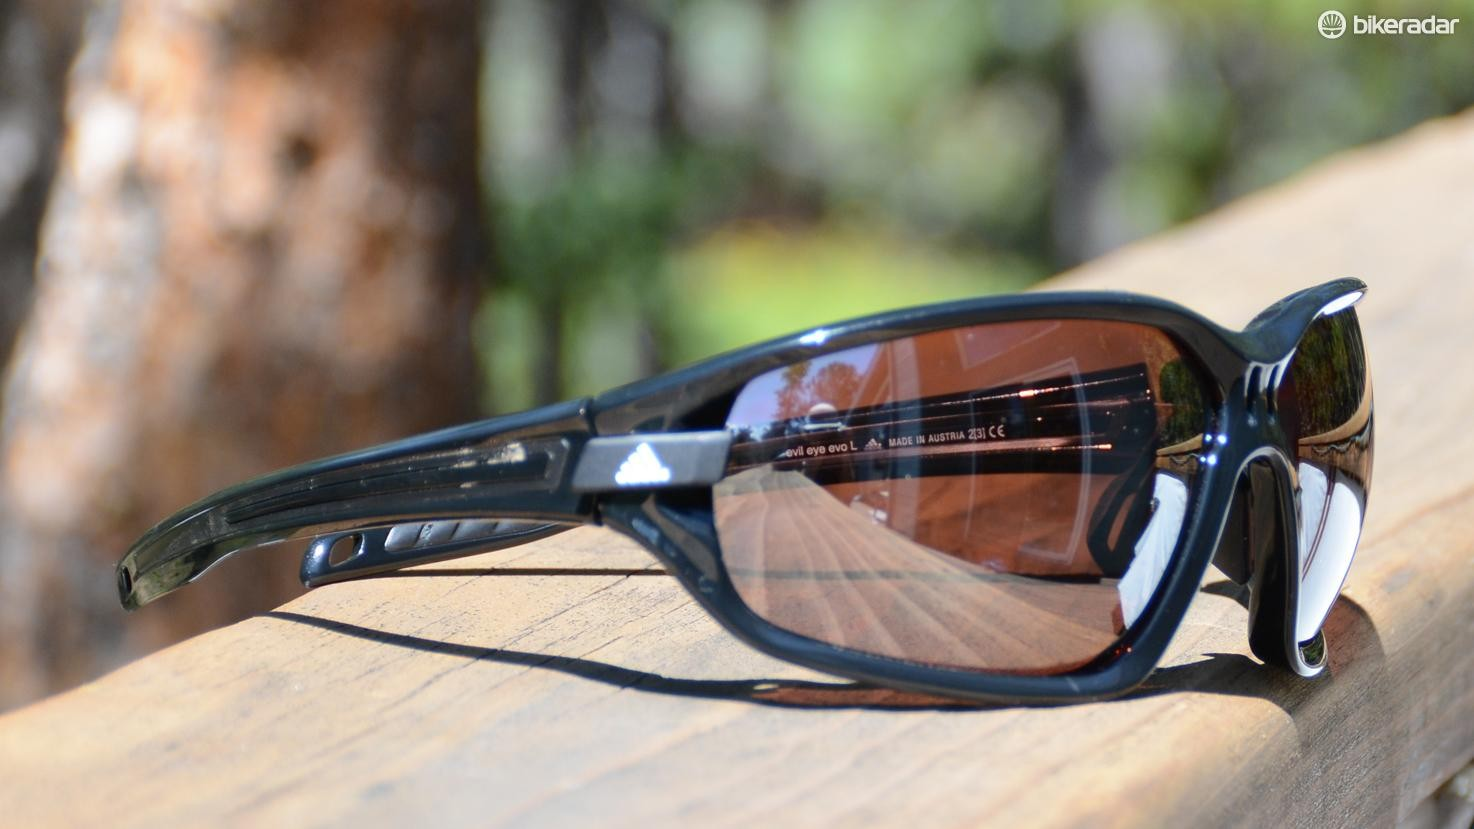 Adidas Evil Eye Evo glasses are very large and provide a lot of coverage